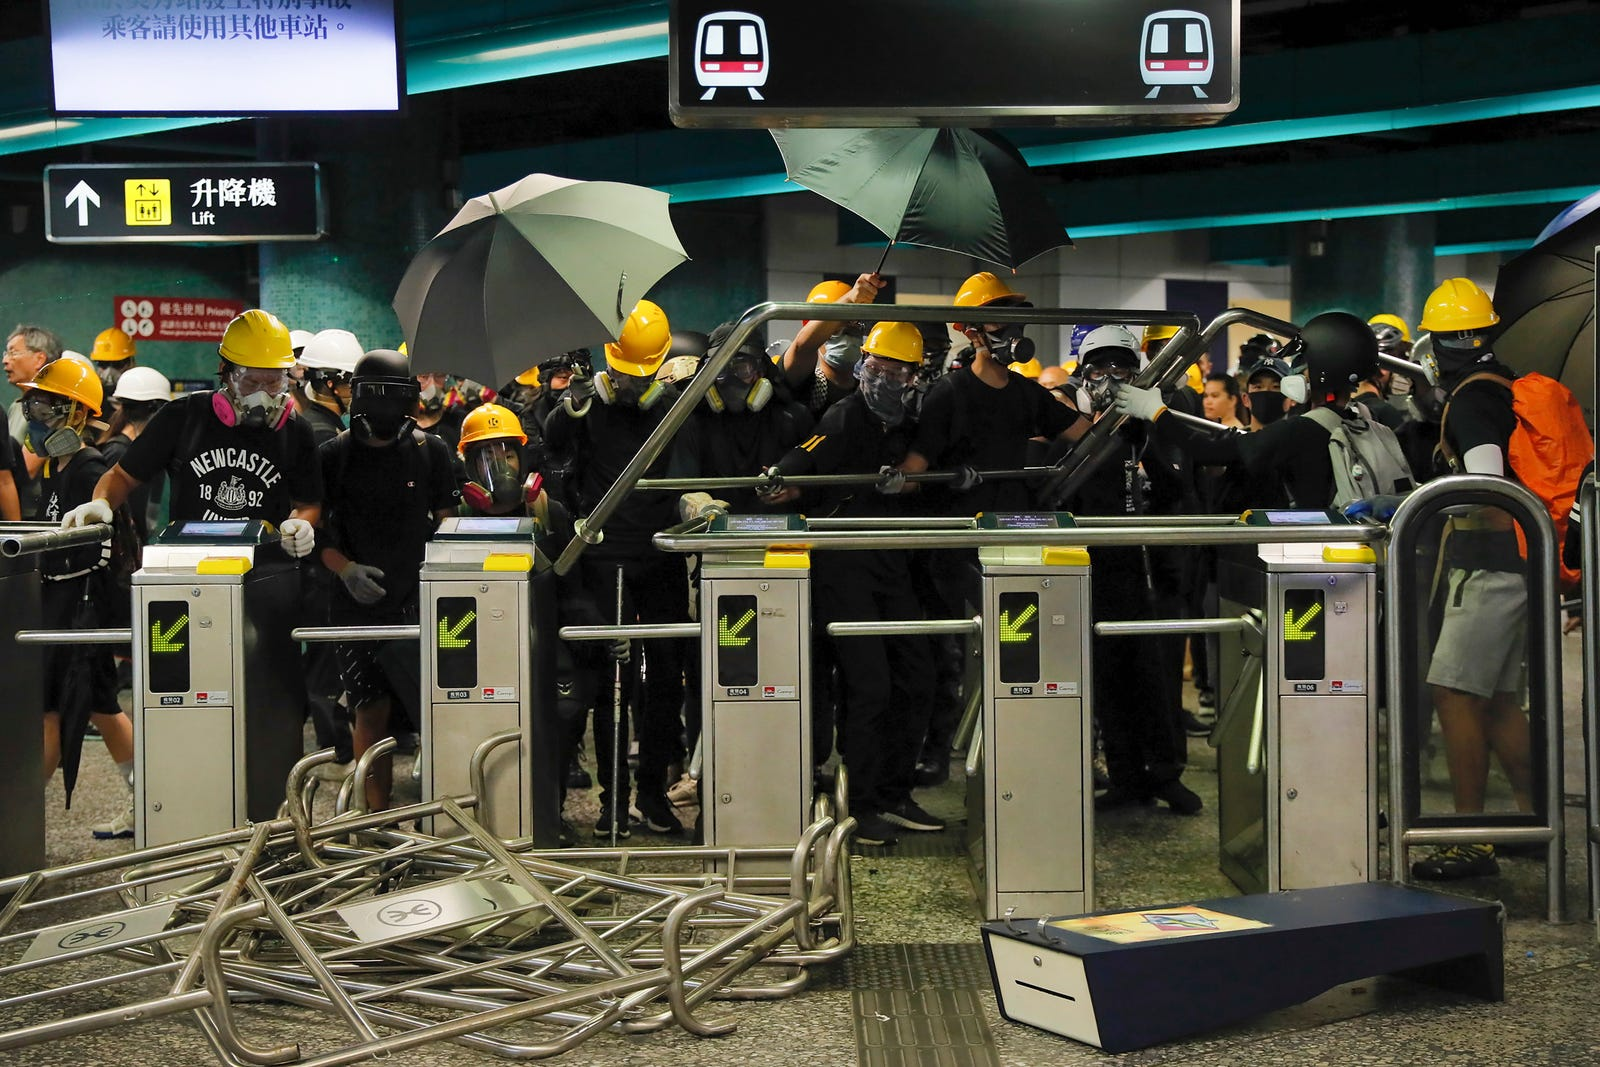 Protesters use steels barricades to form a defensive line inside the Quarry bay MTR station as they face with riot police in Hong Kong, Sunday, Aug. 11, 2019.